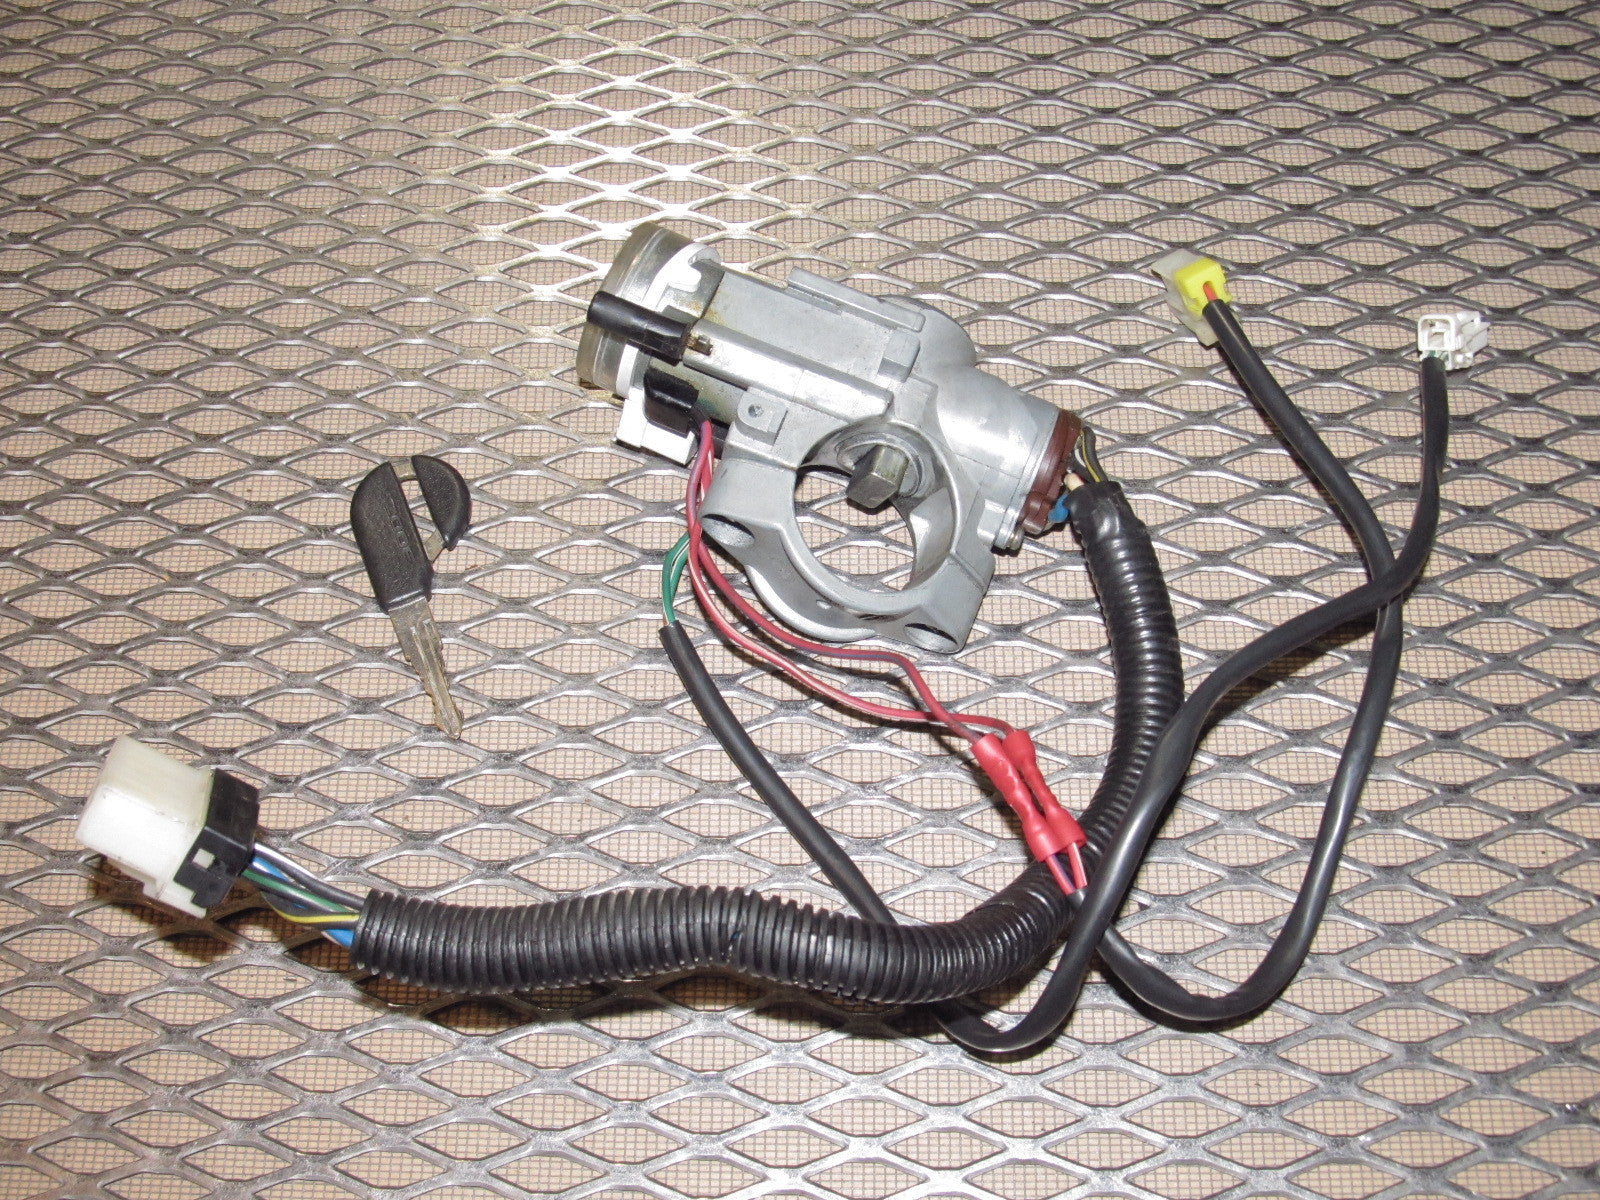 300Zx Ignition Switch Wiring Diagram from cdn.shopify.com